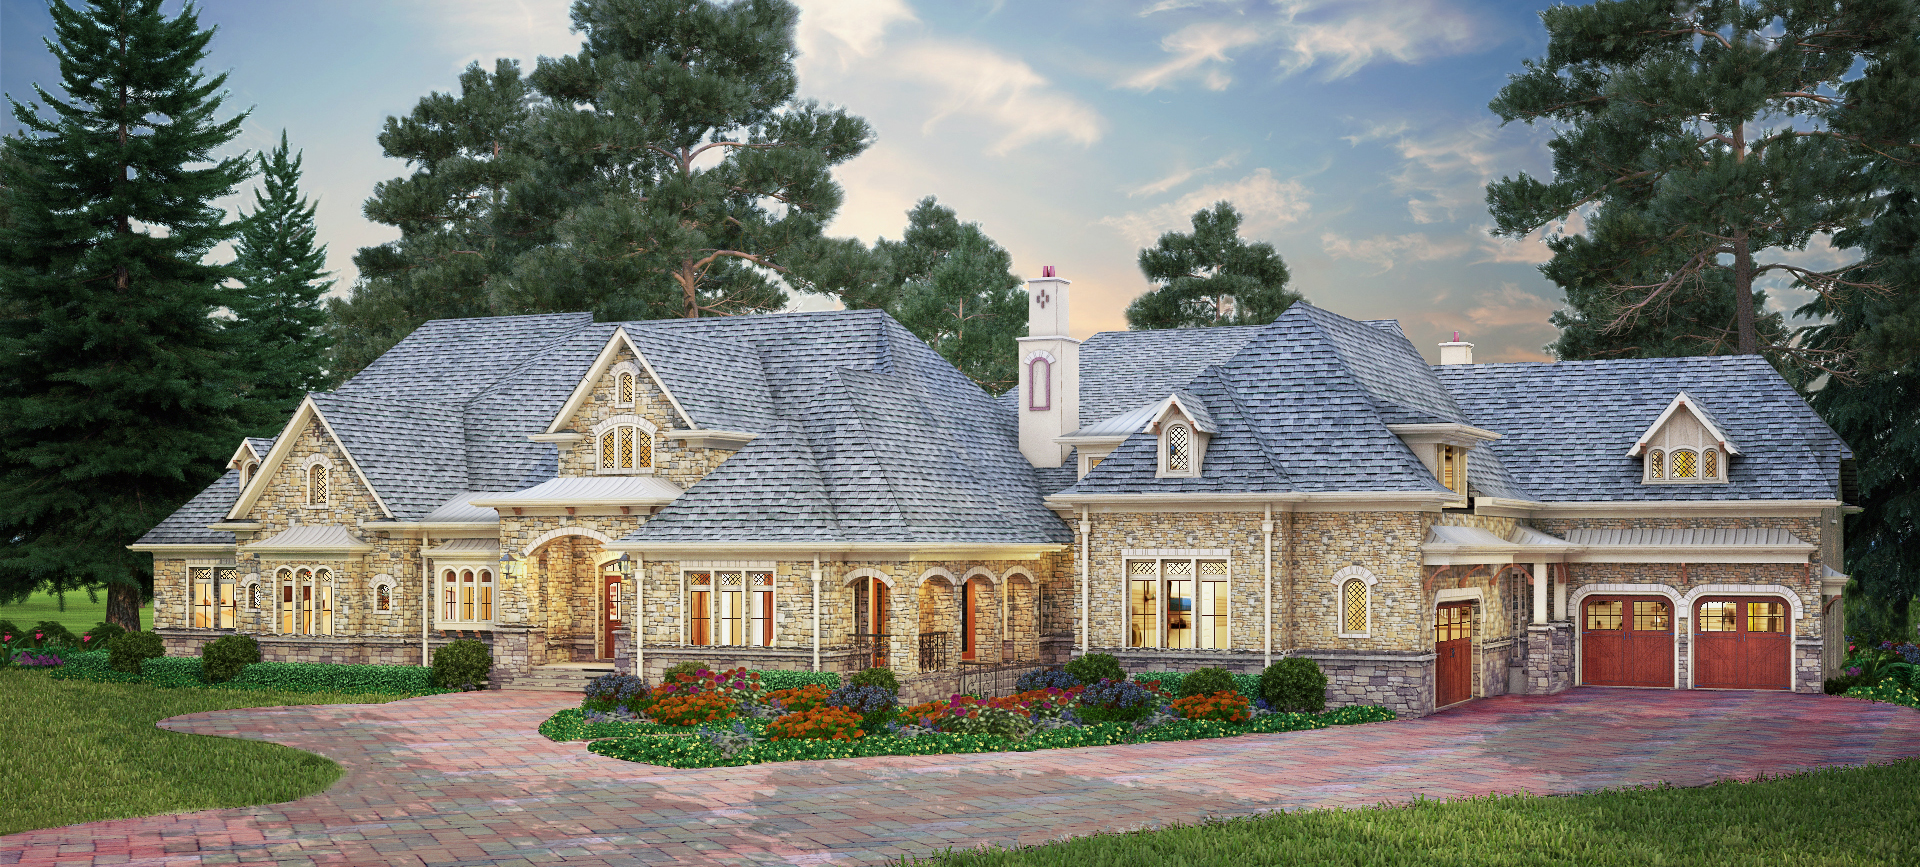 Luxury architectural house design plans architectural for New house plans canada